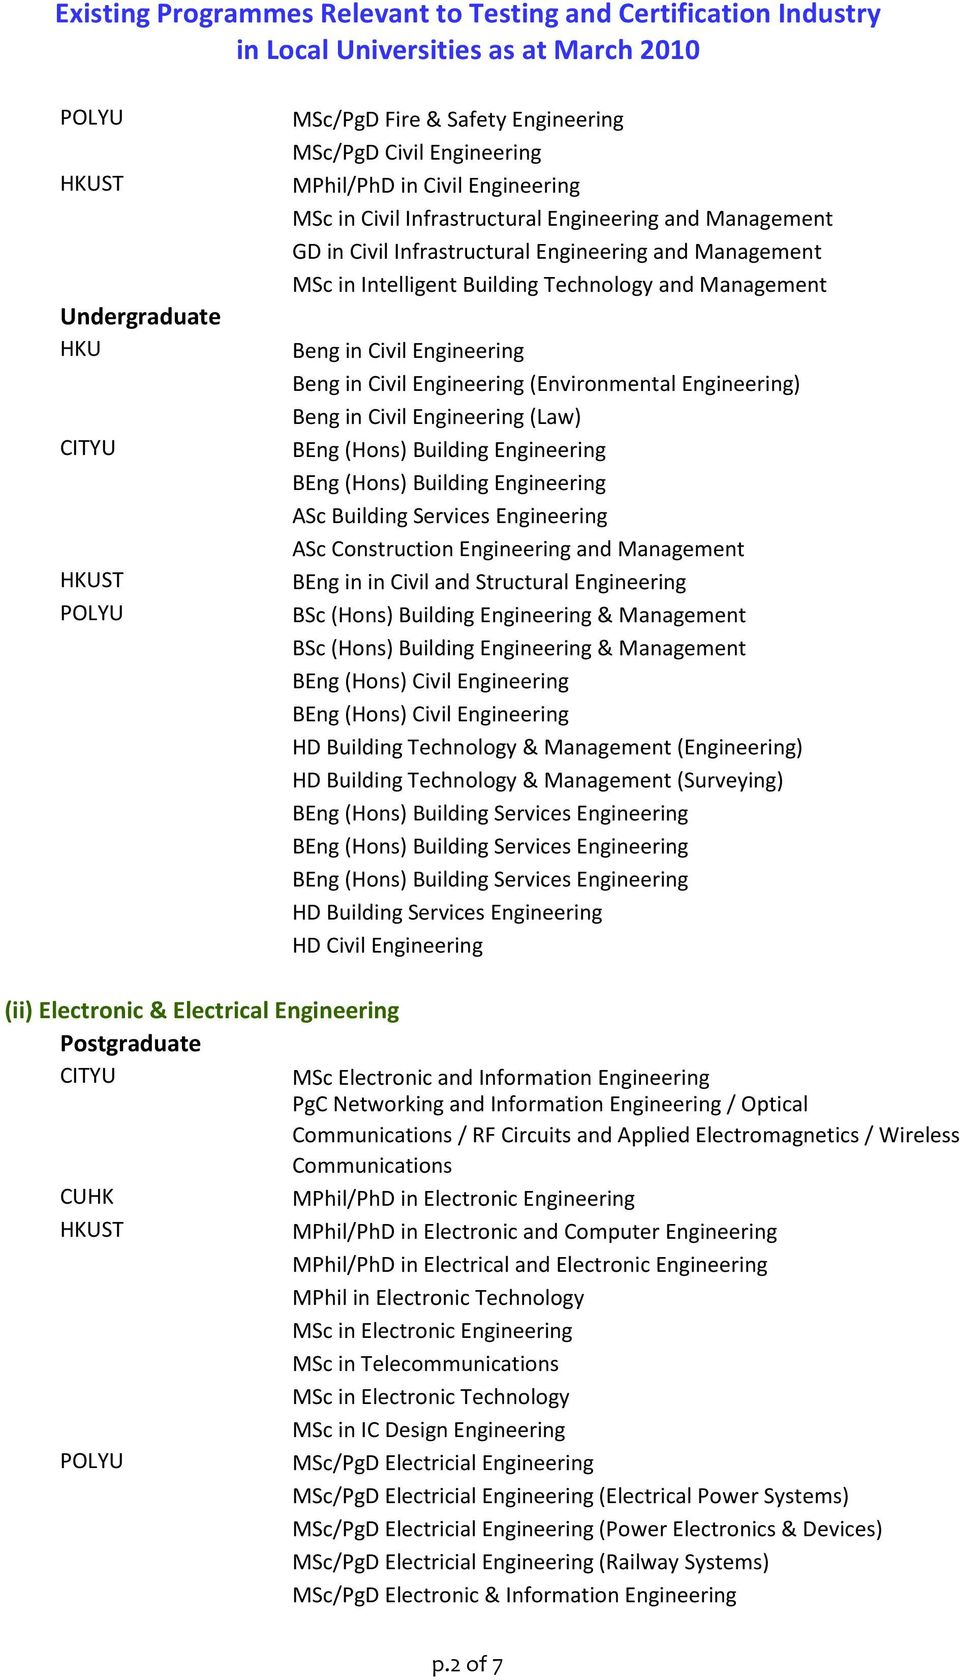 Engineering BEng (Hons) Building Engineering ASc Building Services Engineering ASc Construction Engineering and Management BEng in in Civil and Structural Engineering BSc (Hons) Building Engineering